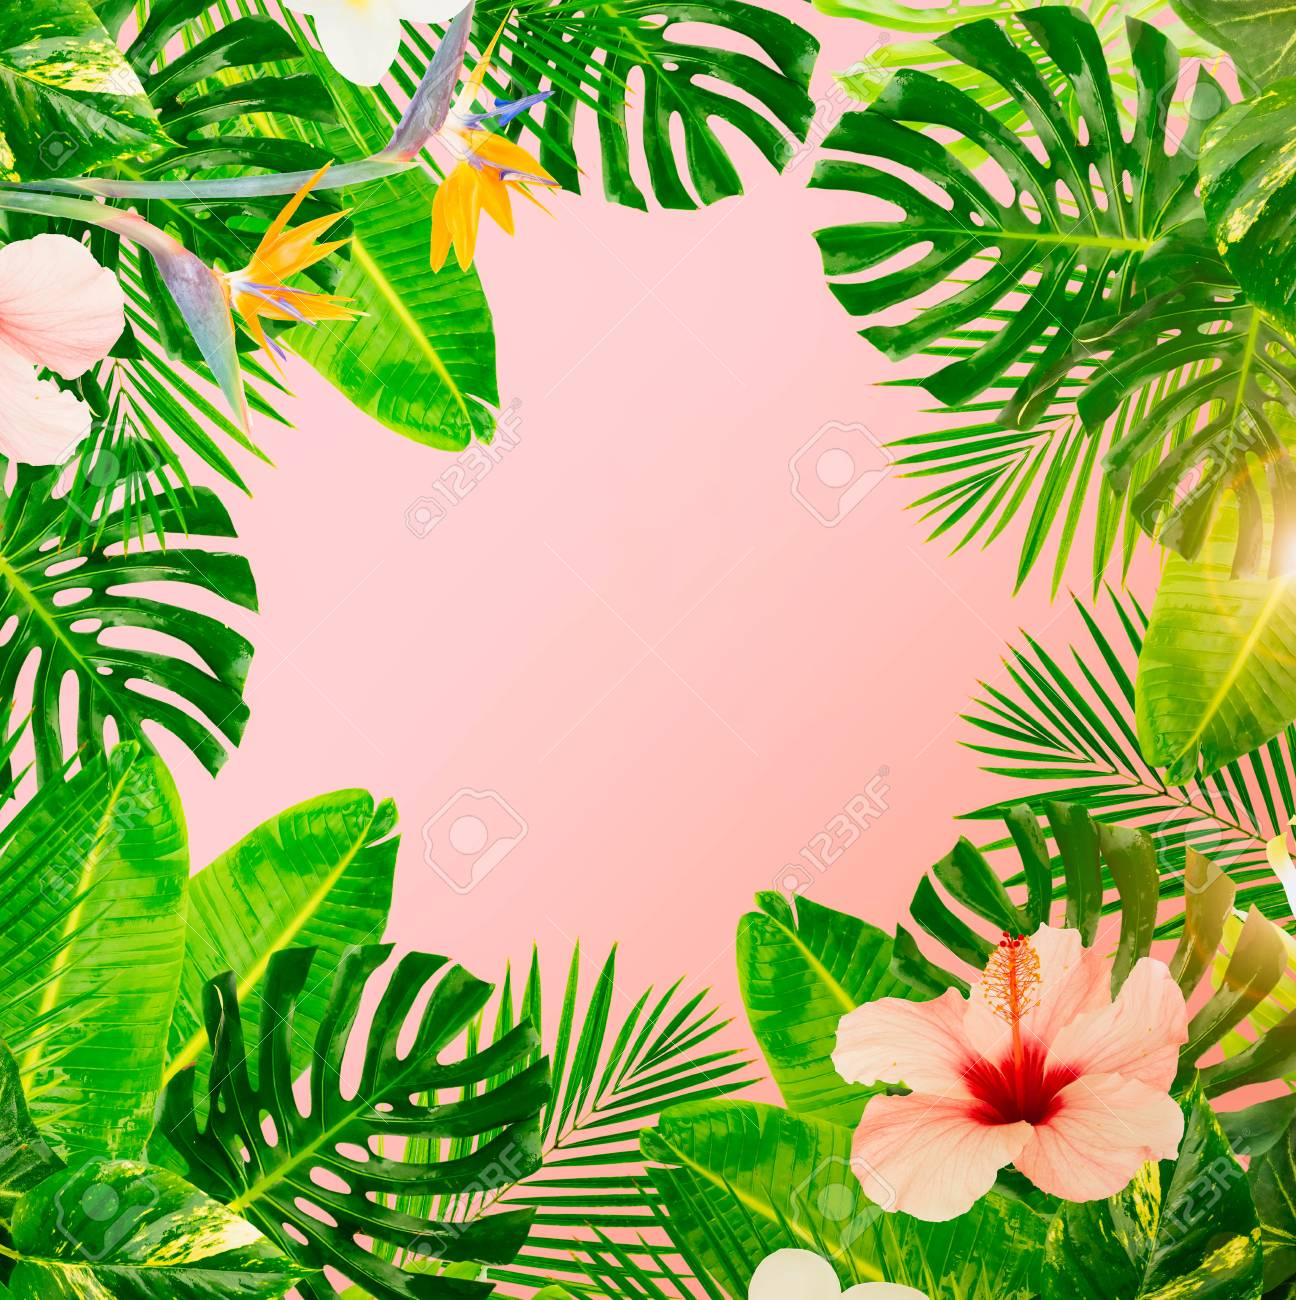 Tropical Green Leaves And Flowers Frame On Pink Background Toned Stock Photo Picture And Royalty Free Image Image 101532953 It'll will look like this: tropical green leaves and flowers frame on pink background toned